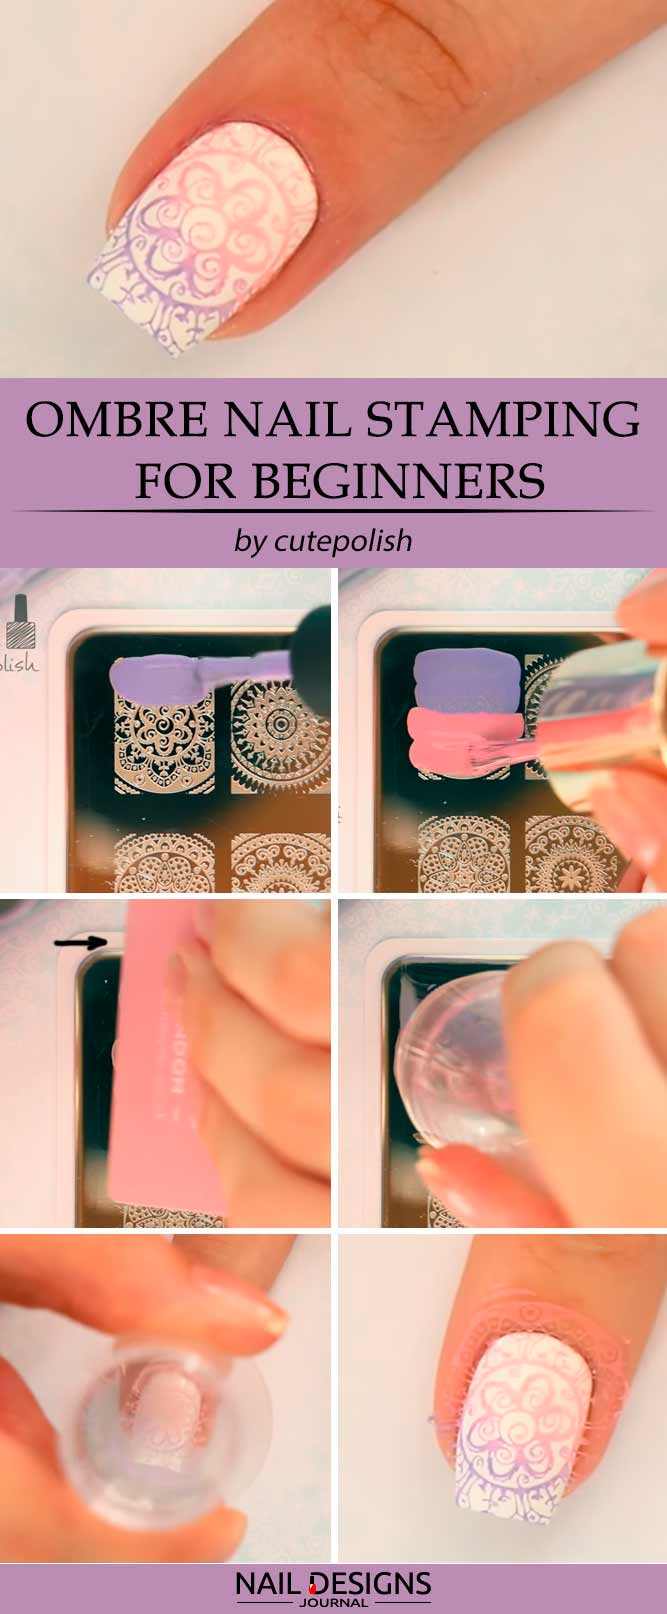 Ombre Nail Stamping For Beginners